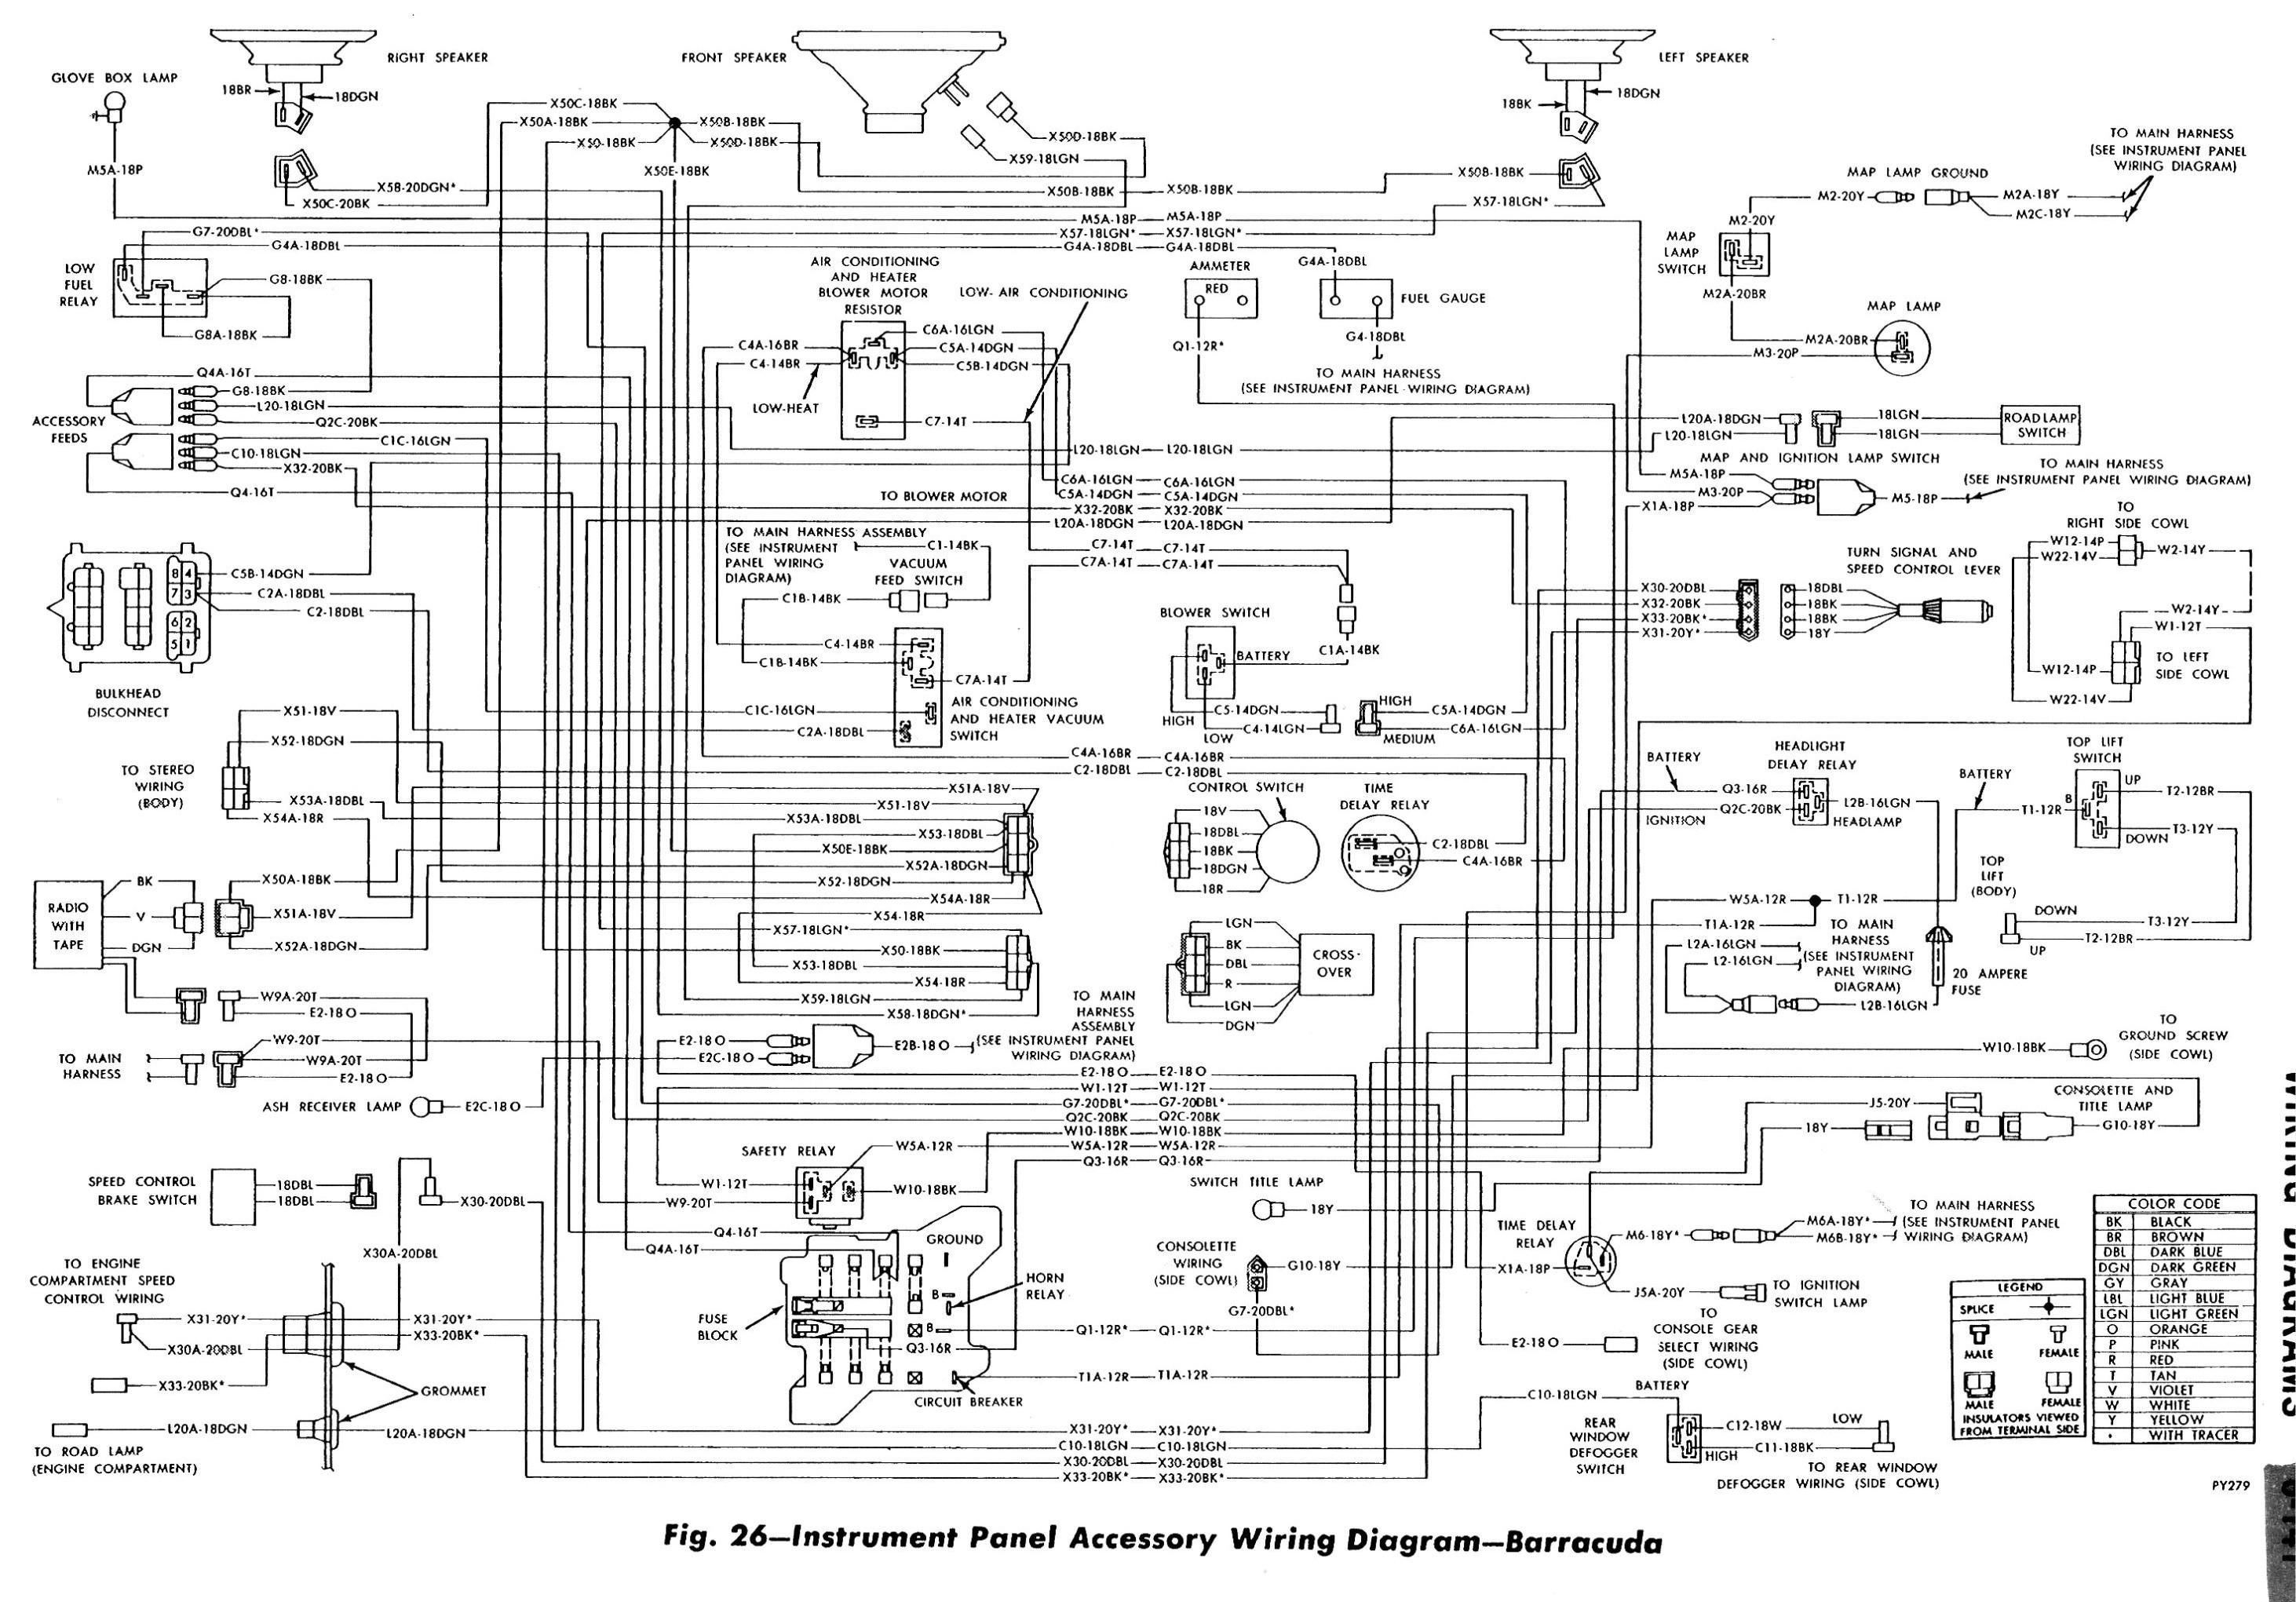 1970 cuda wiring diagram